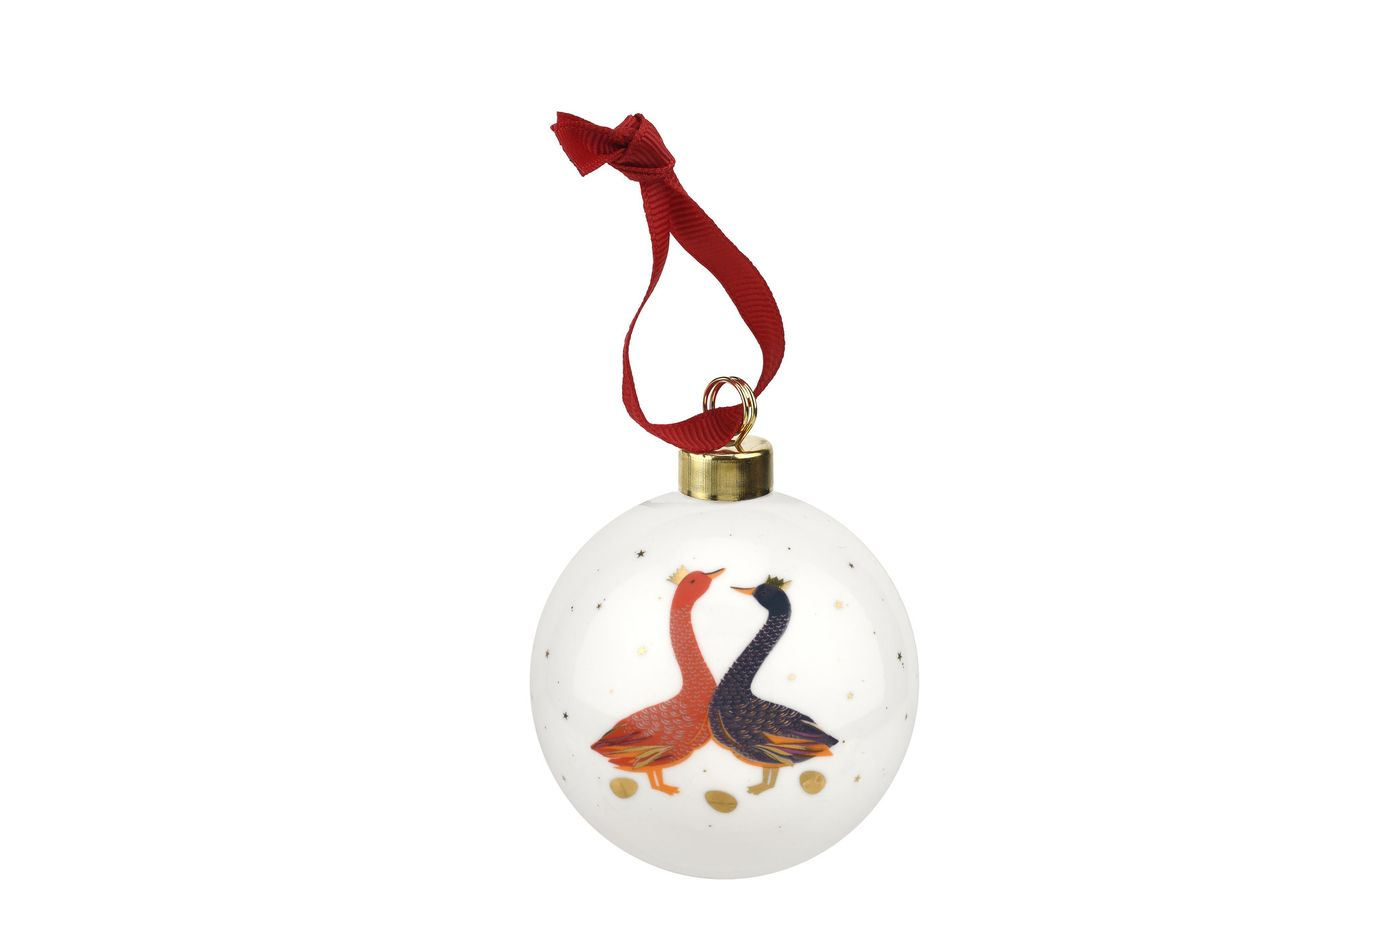 Sara Miller London for Portmeirion Geese Christmas Collection Bauble Red & Blue Geese thumb 1